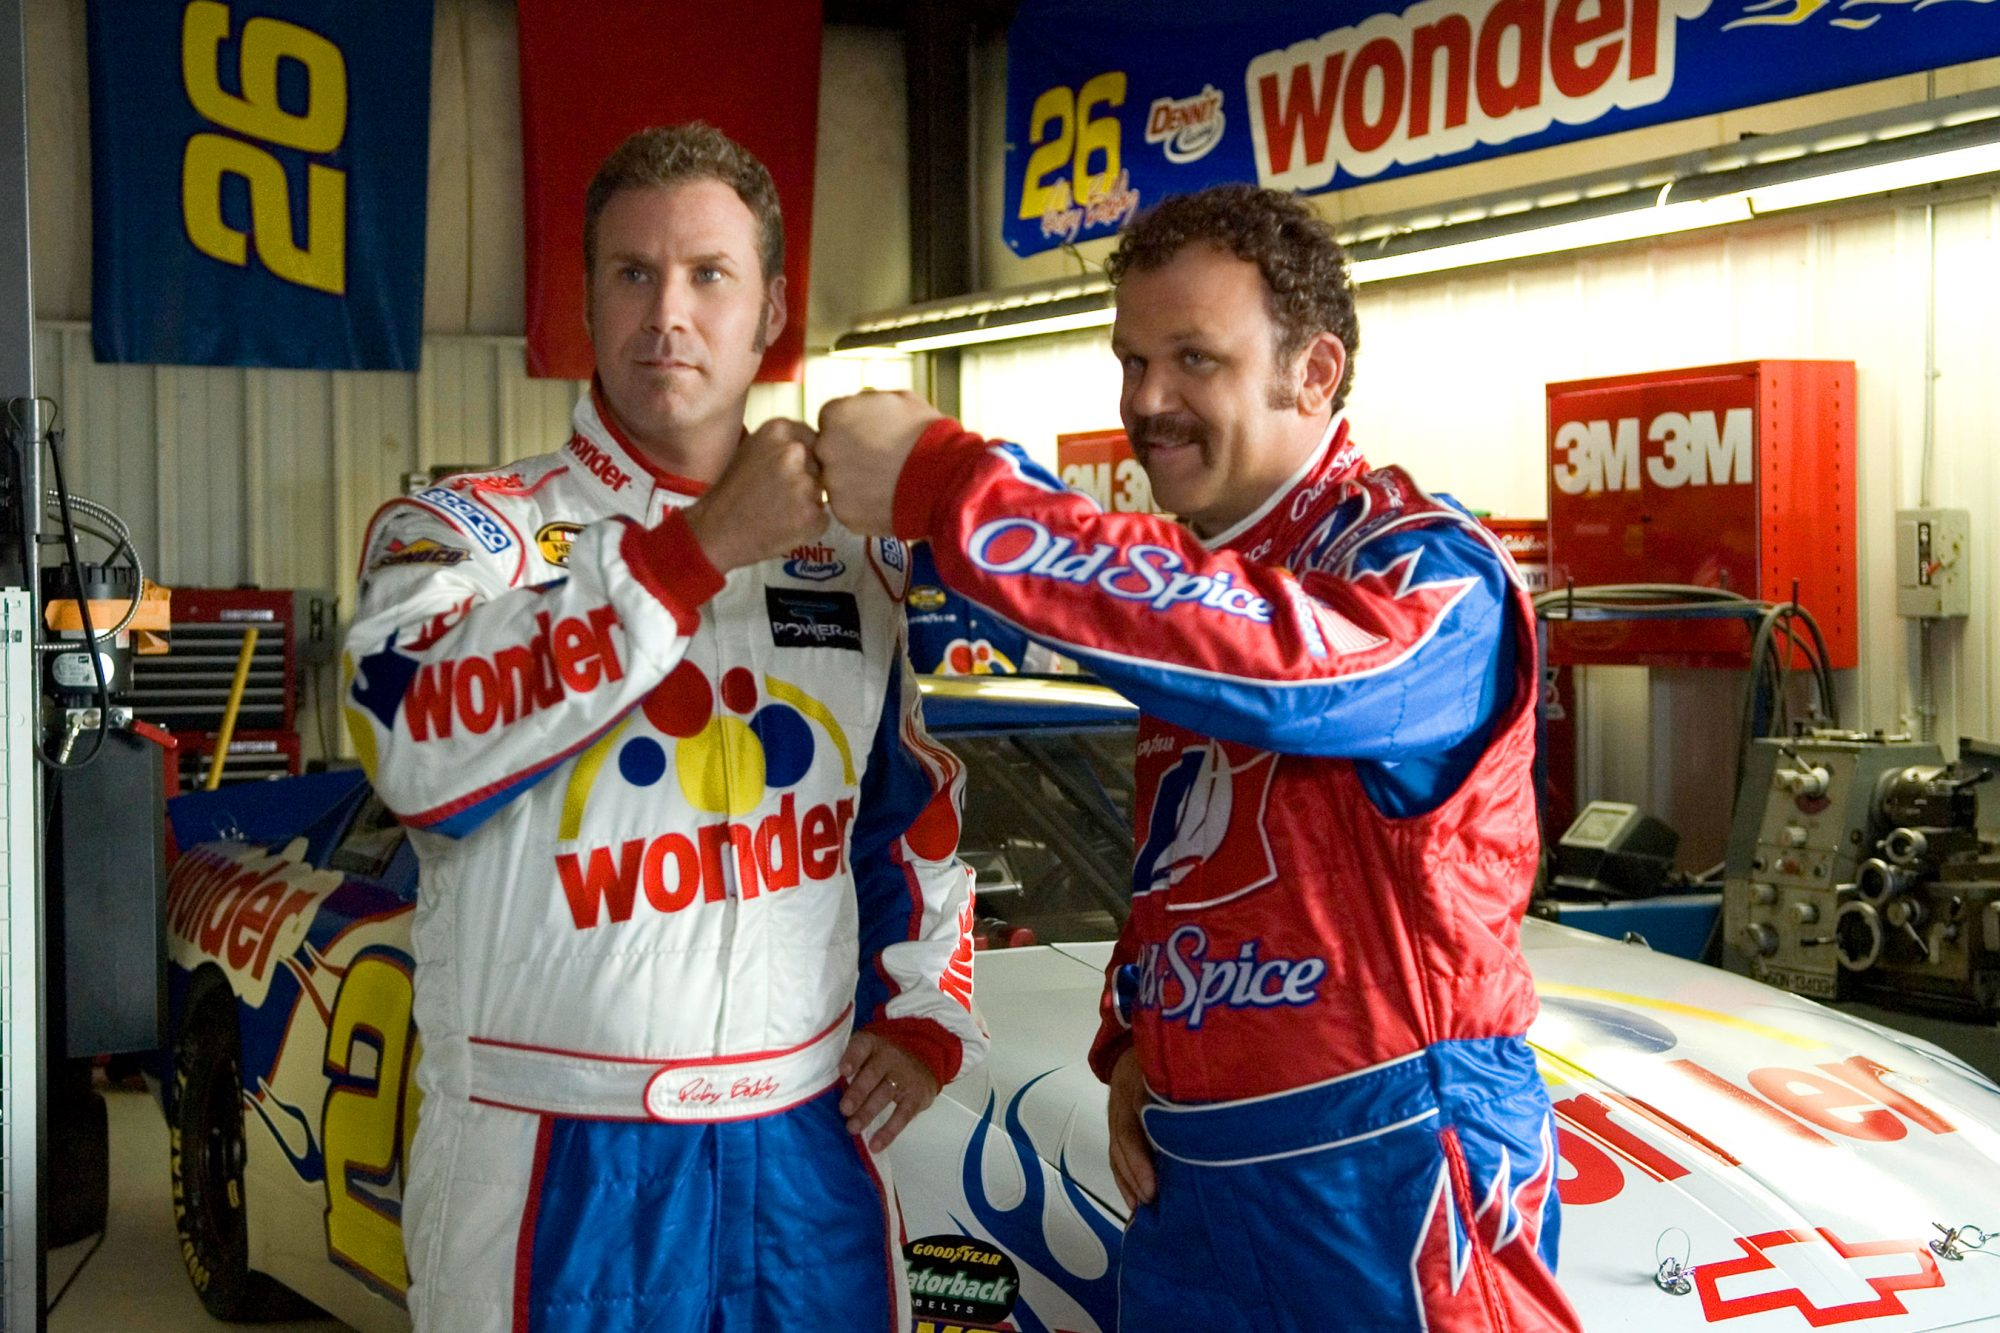 2. Will Ferrell and John C. Reilly in Talladega Nights: The Ballad of Ricky Bobby (2006)